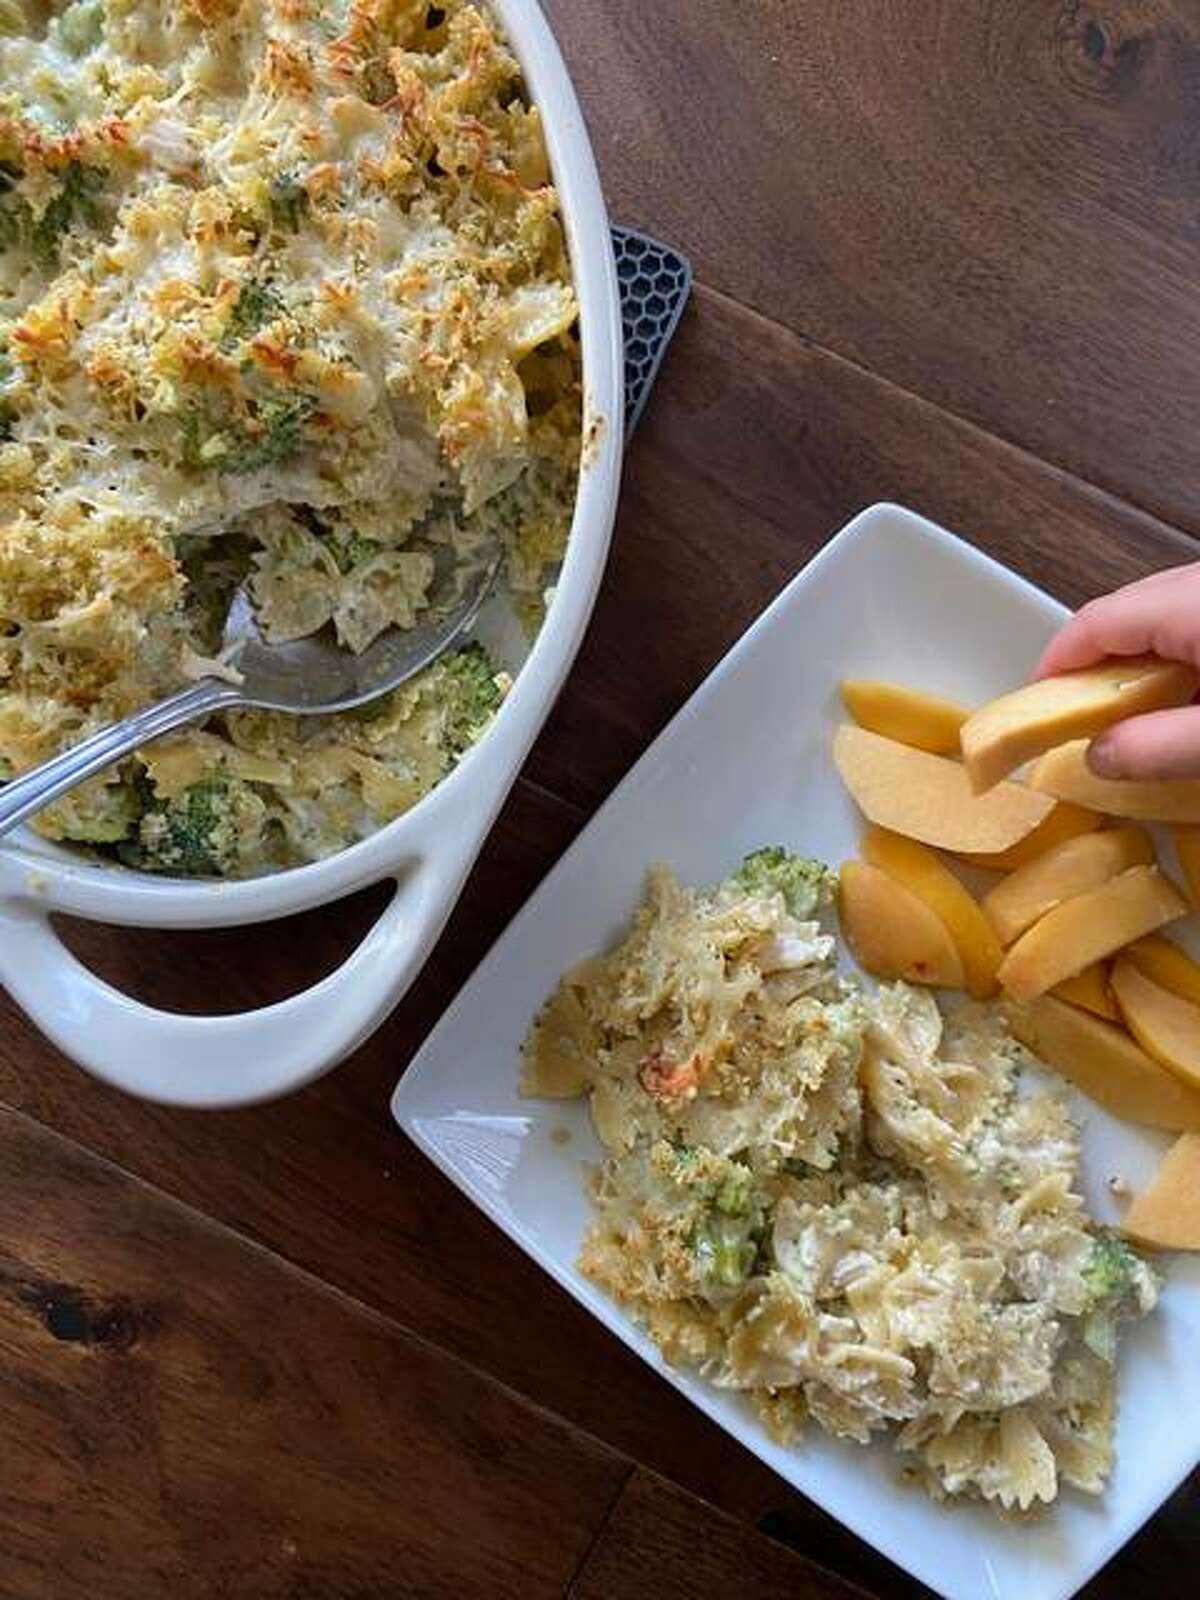 Chicken Alfredo Bake is quick, but also is amazing as leftovers so it's a win-win, says recipe creator Rachel Tritsch.